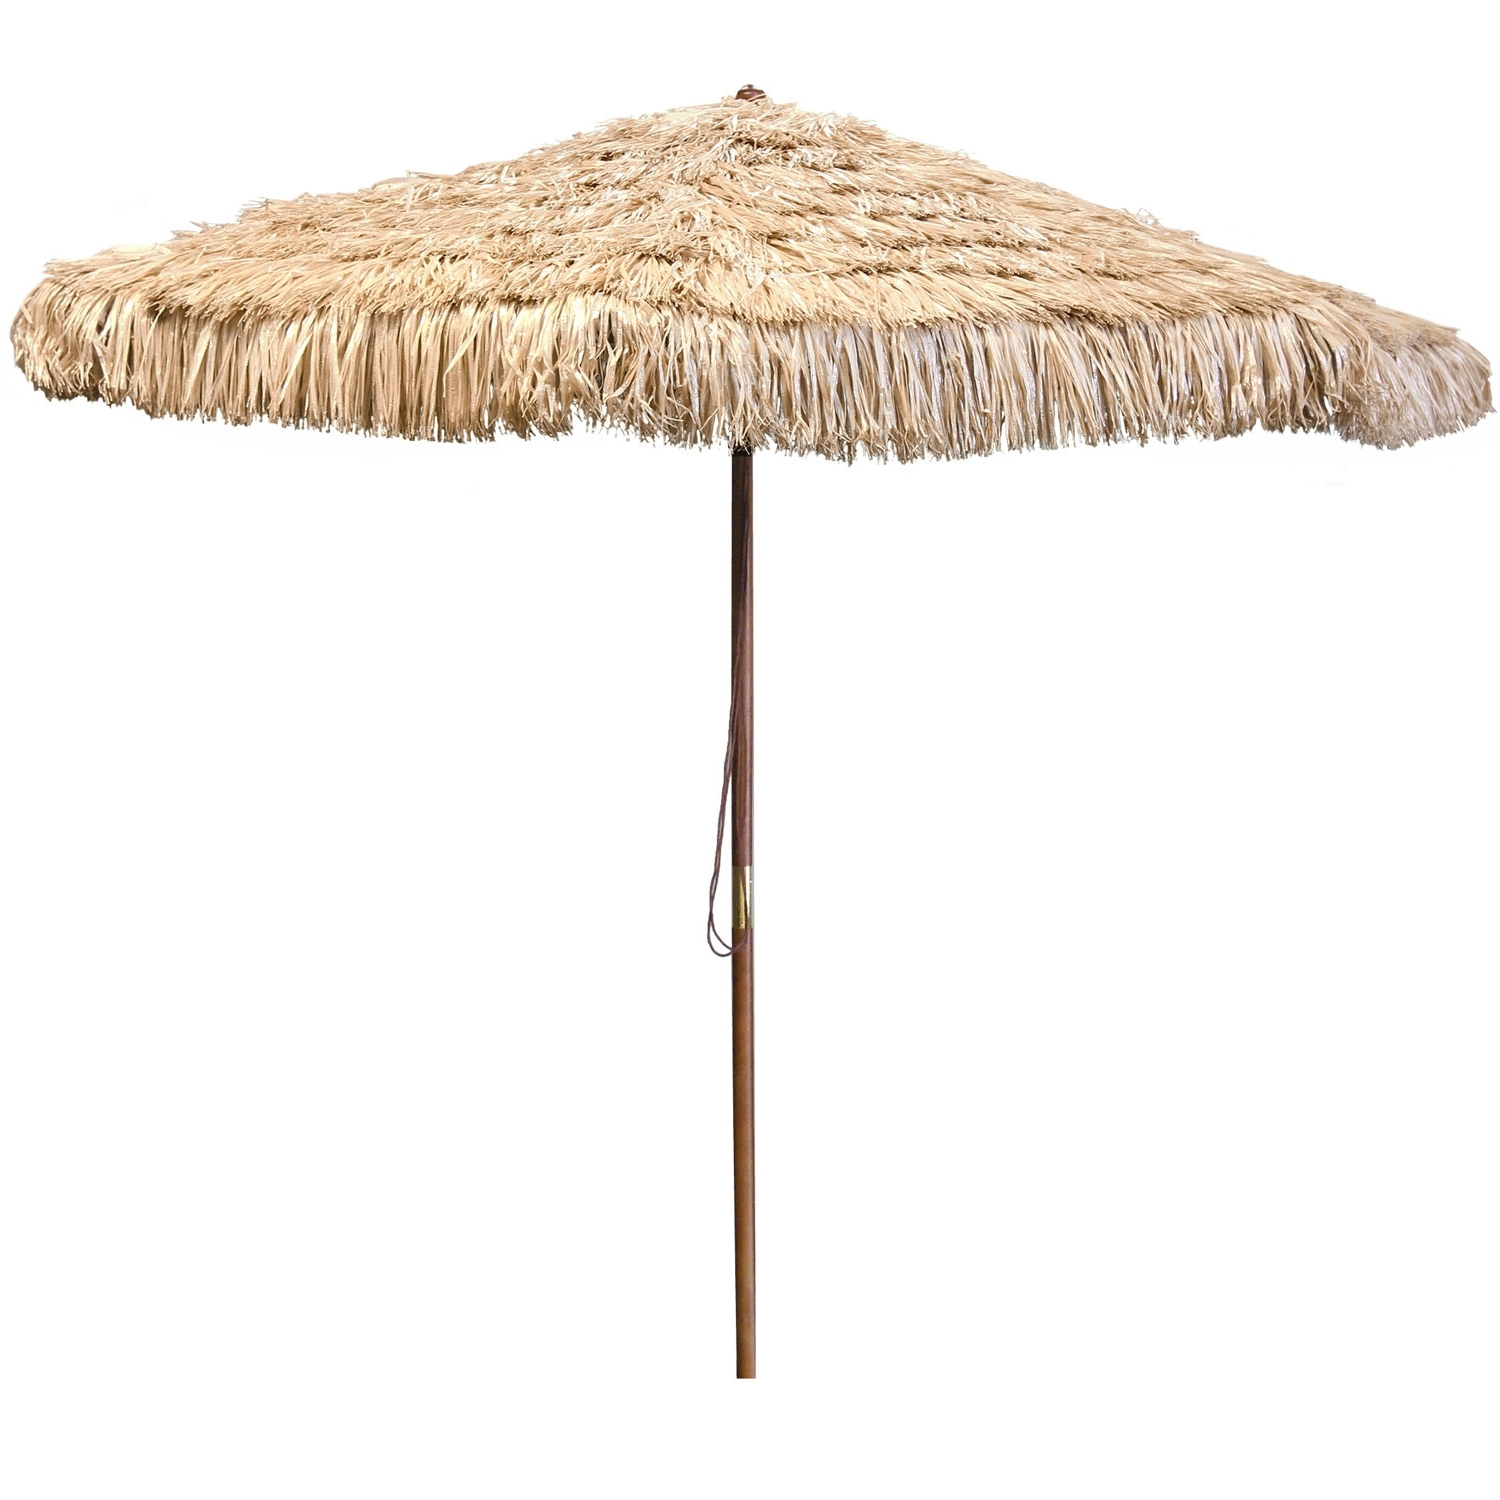 Jordan Manufacturing Company Natural Wooden Hula Umbrella Ump903 Pertaining To Widely Used Jordan Patio Umbrellas (View 6 of 20)